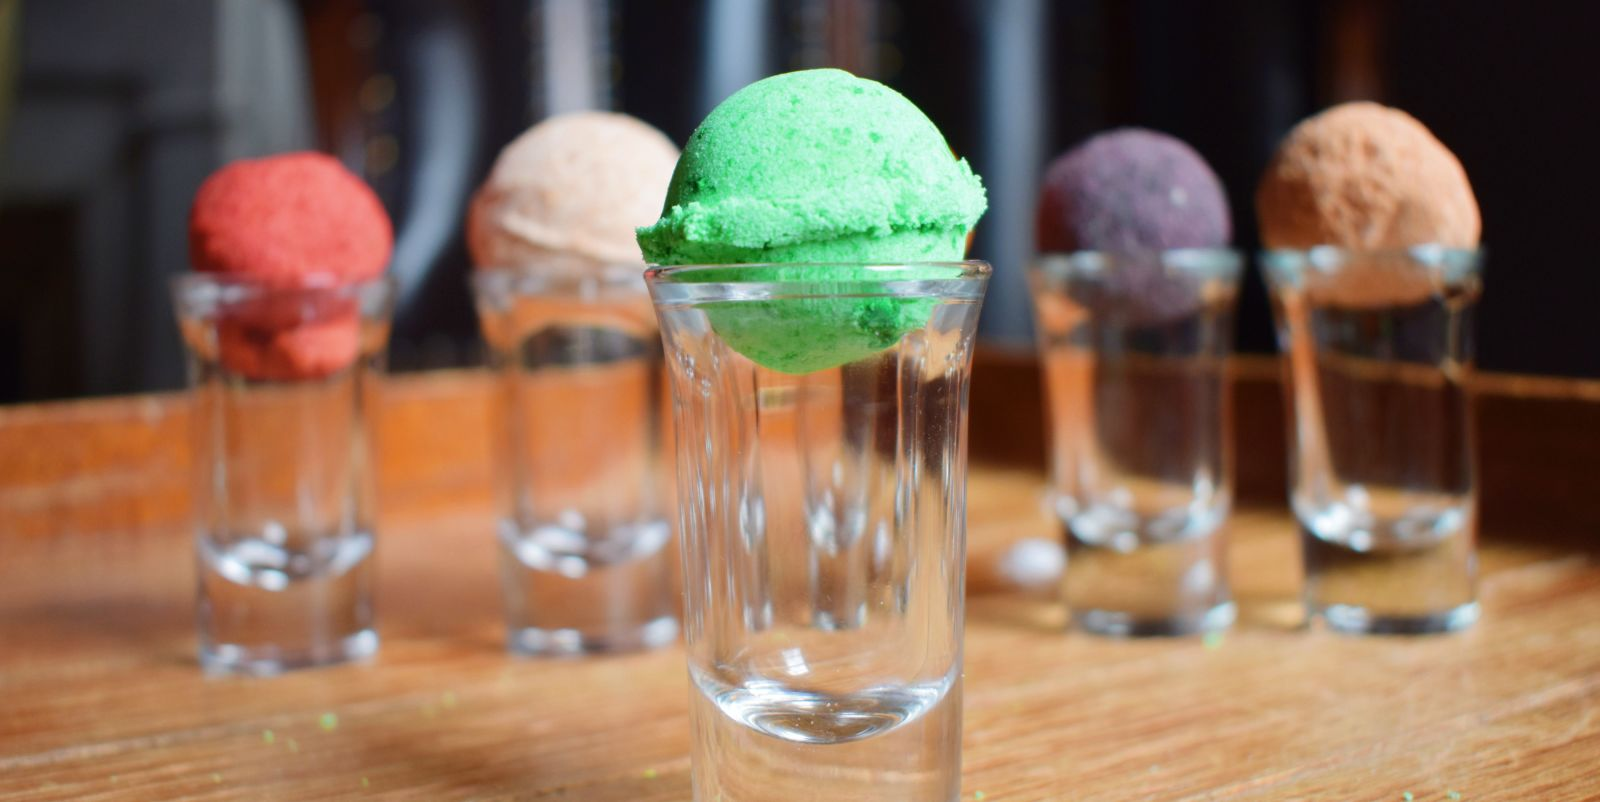 You Can Now Buy Edible Bath Bombs For Your Tequila